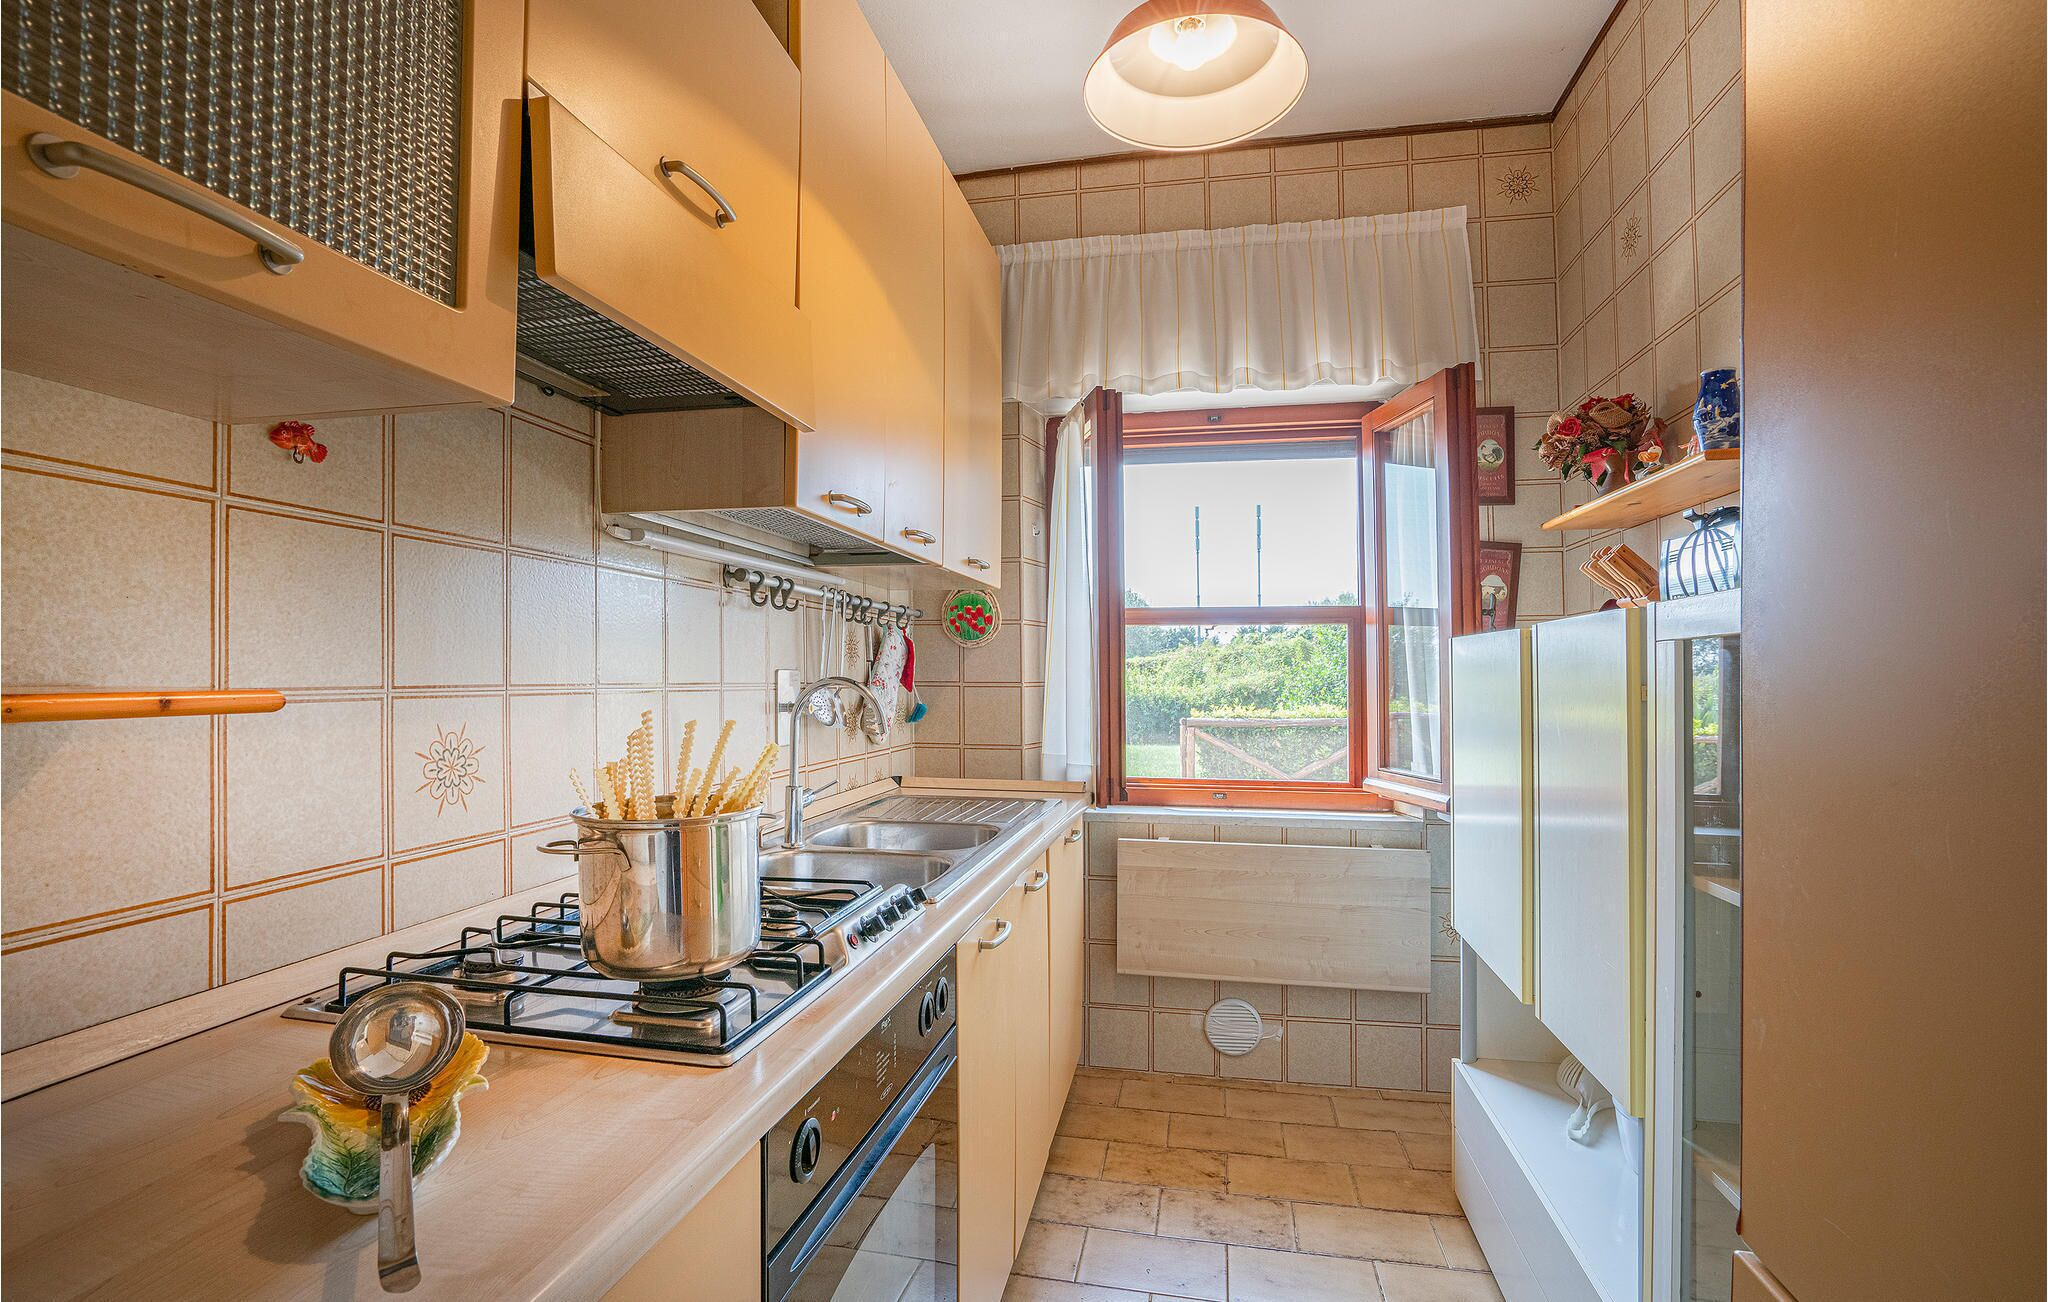 3 Bedroom Accommodation in Capalbio Scalo